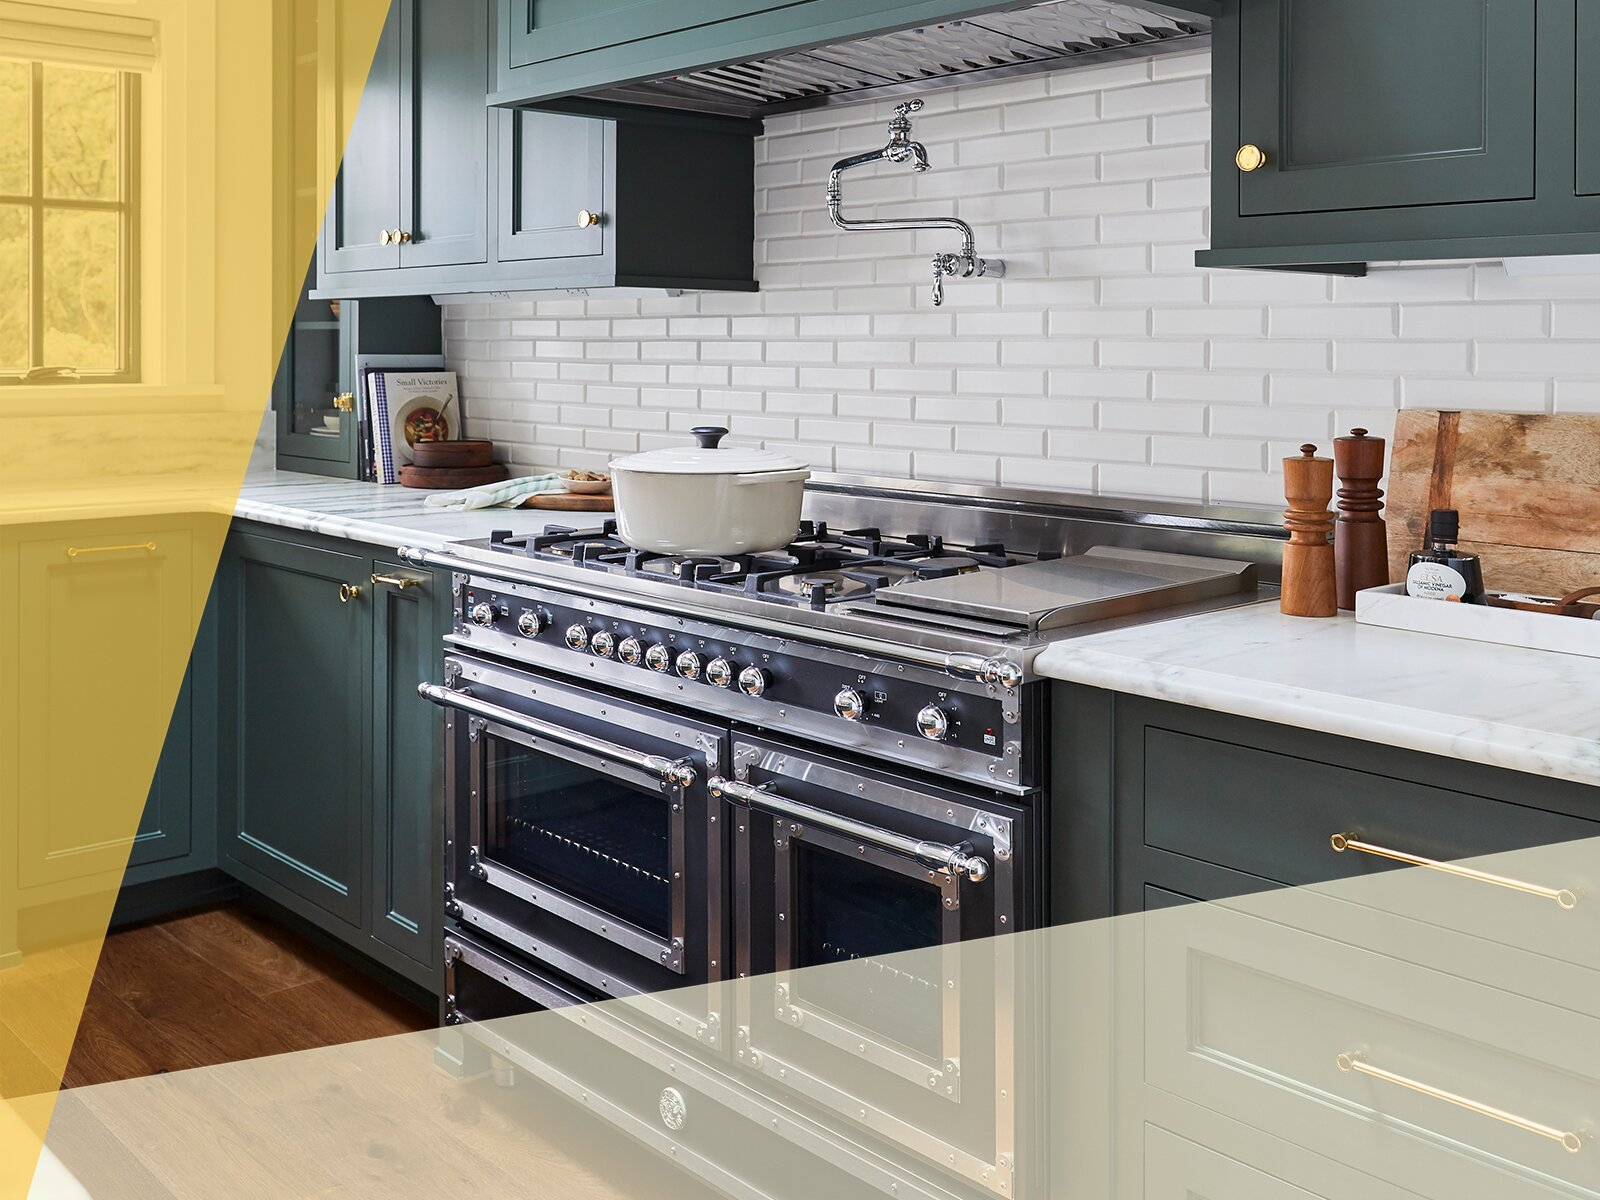 The Best Places to Buy Really Beautiful Kitchen Hardware | Real Simple